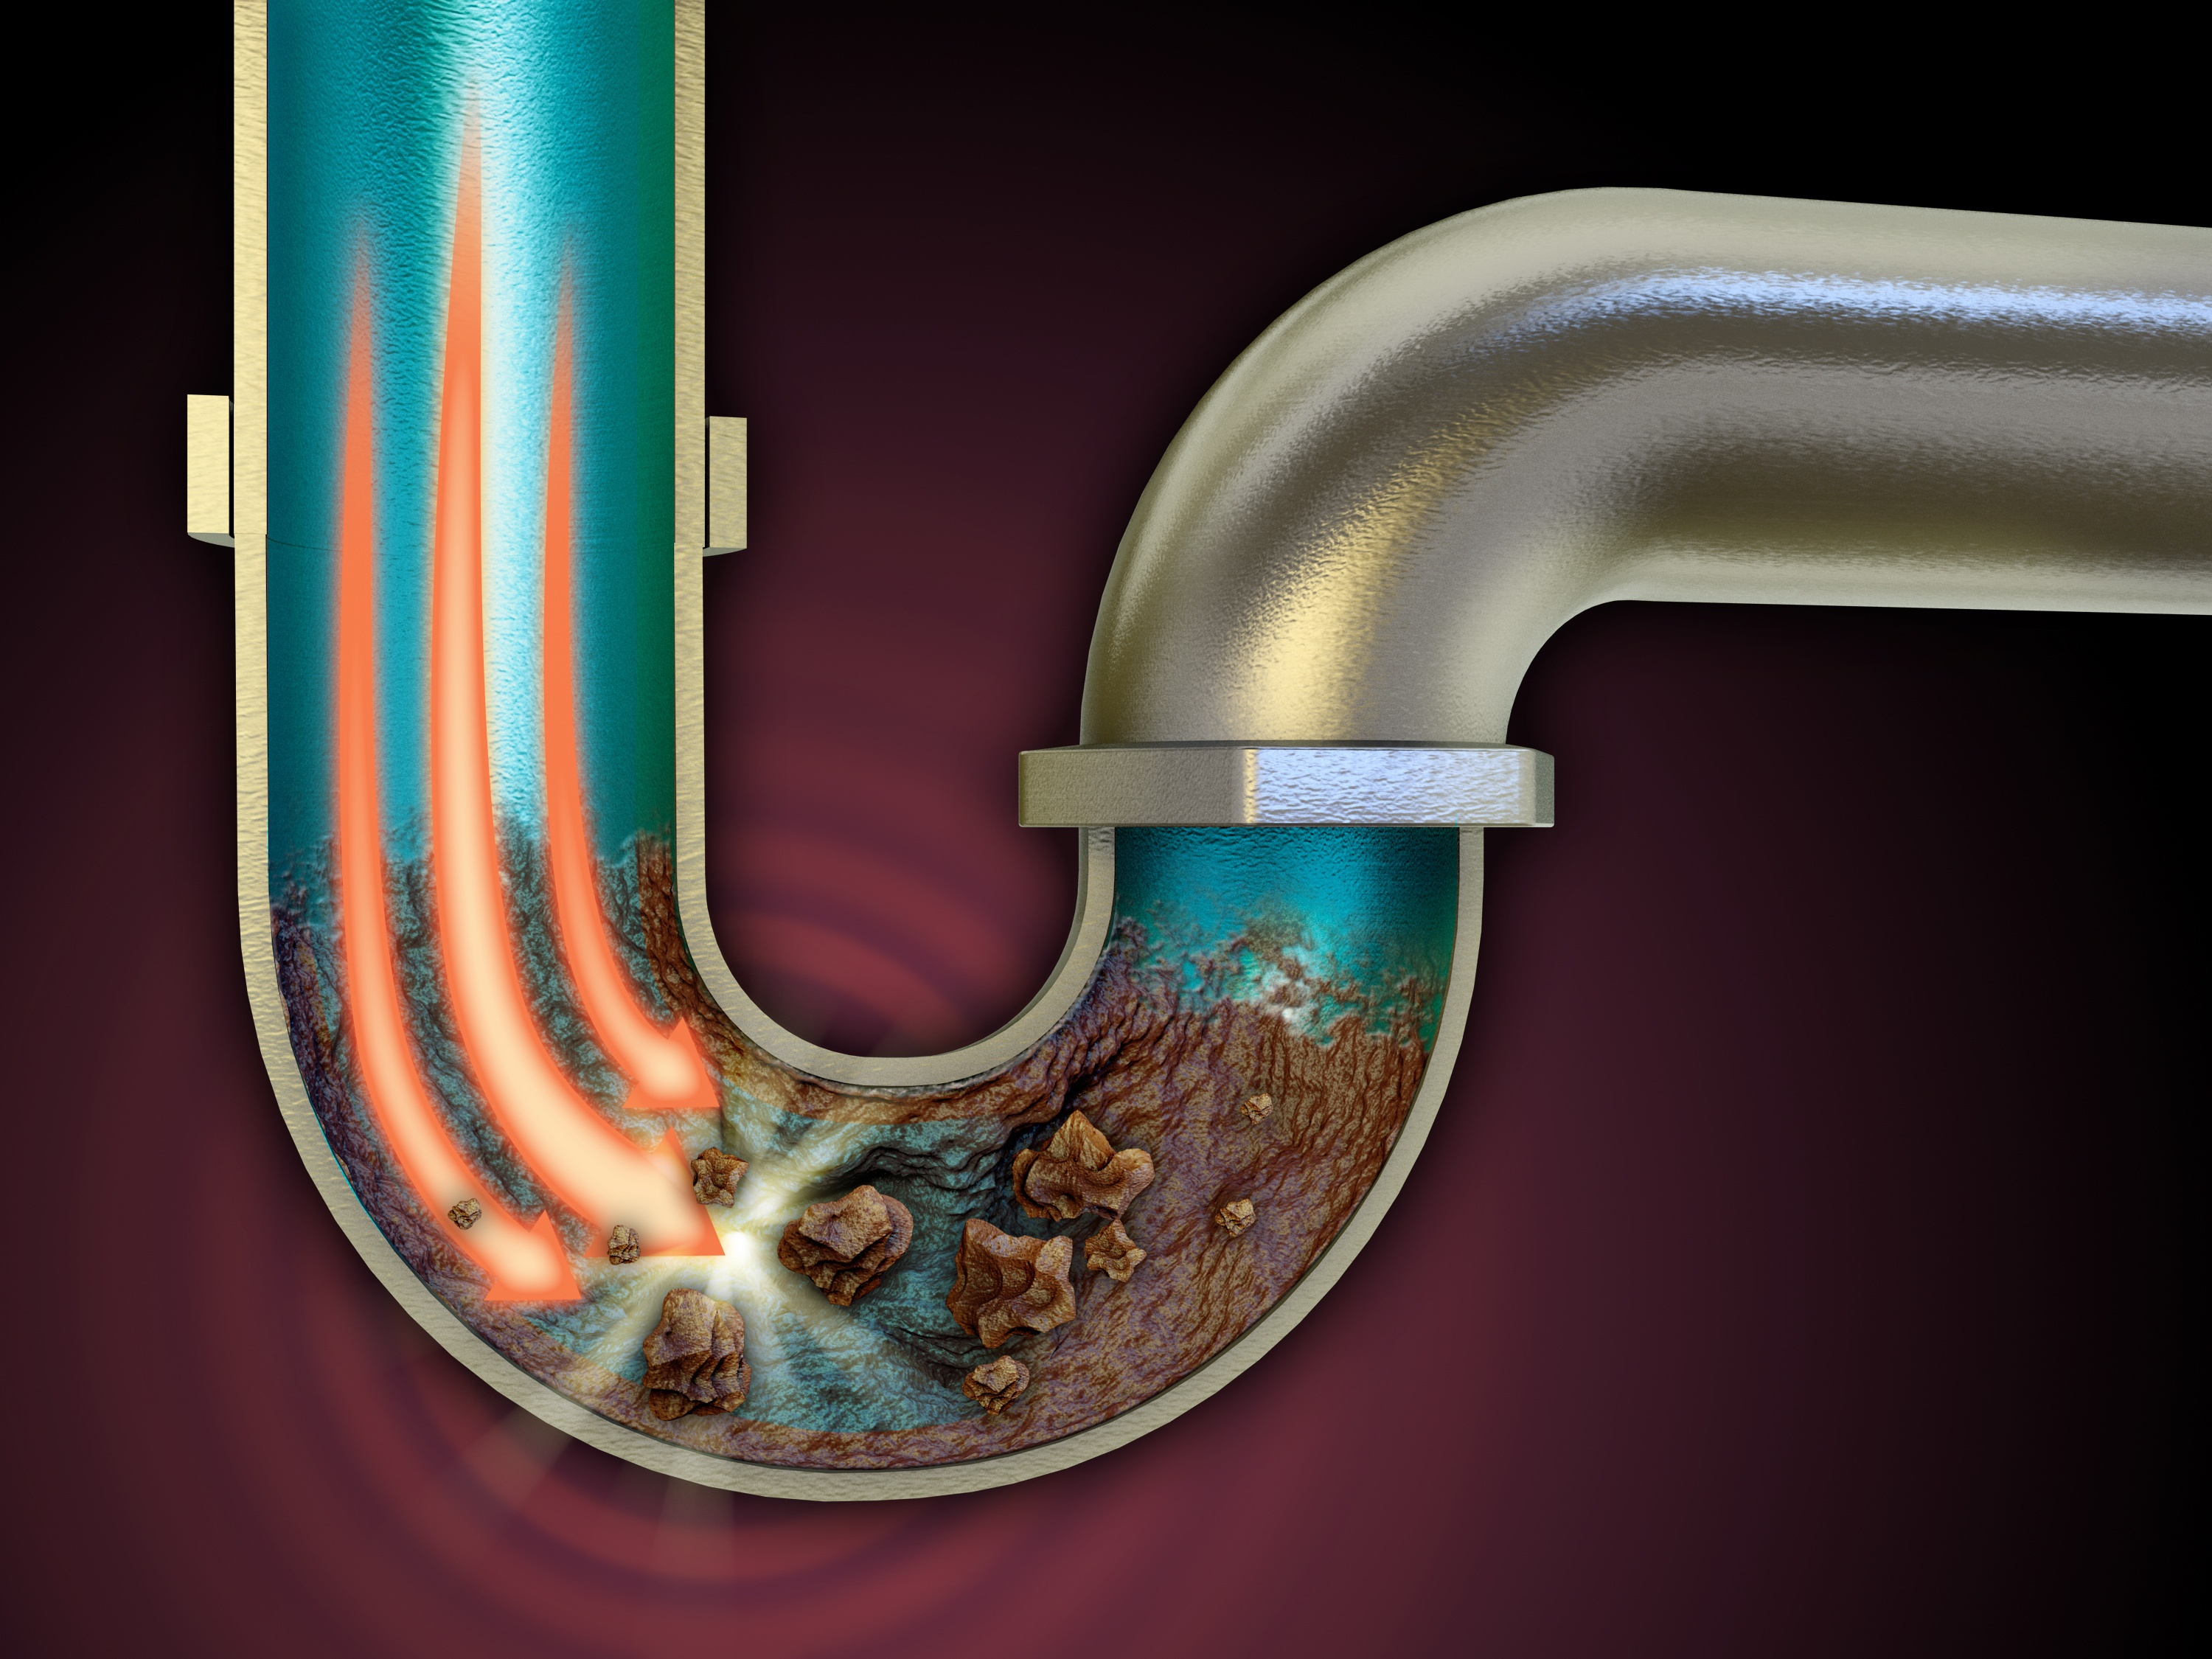 Drain clog in P-Trap - shows how to unclog a drain in sink